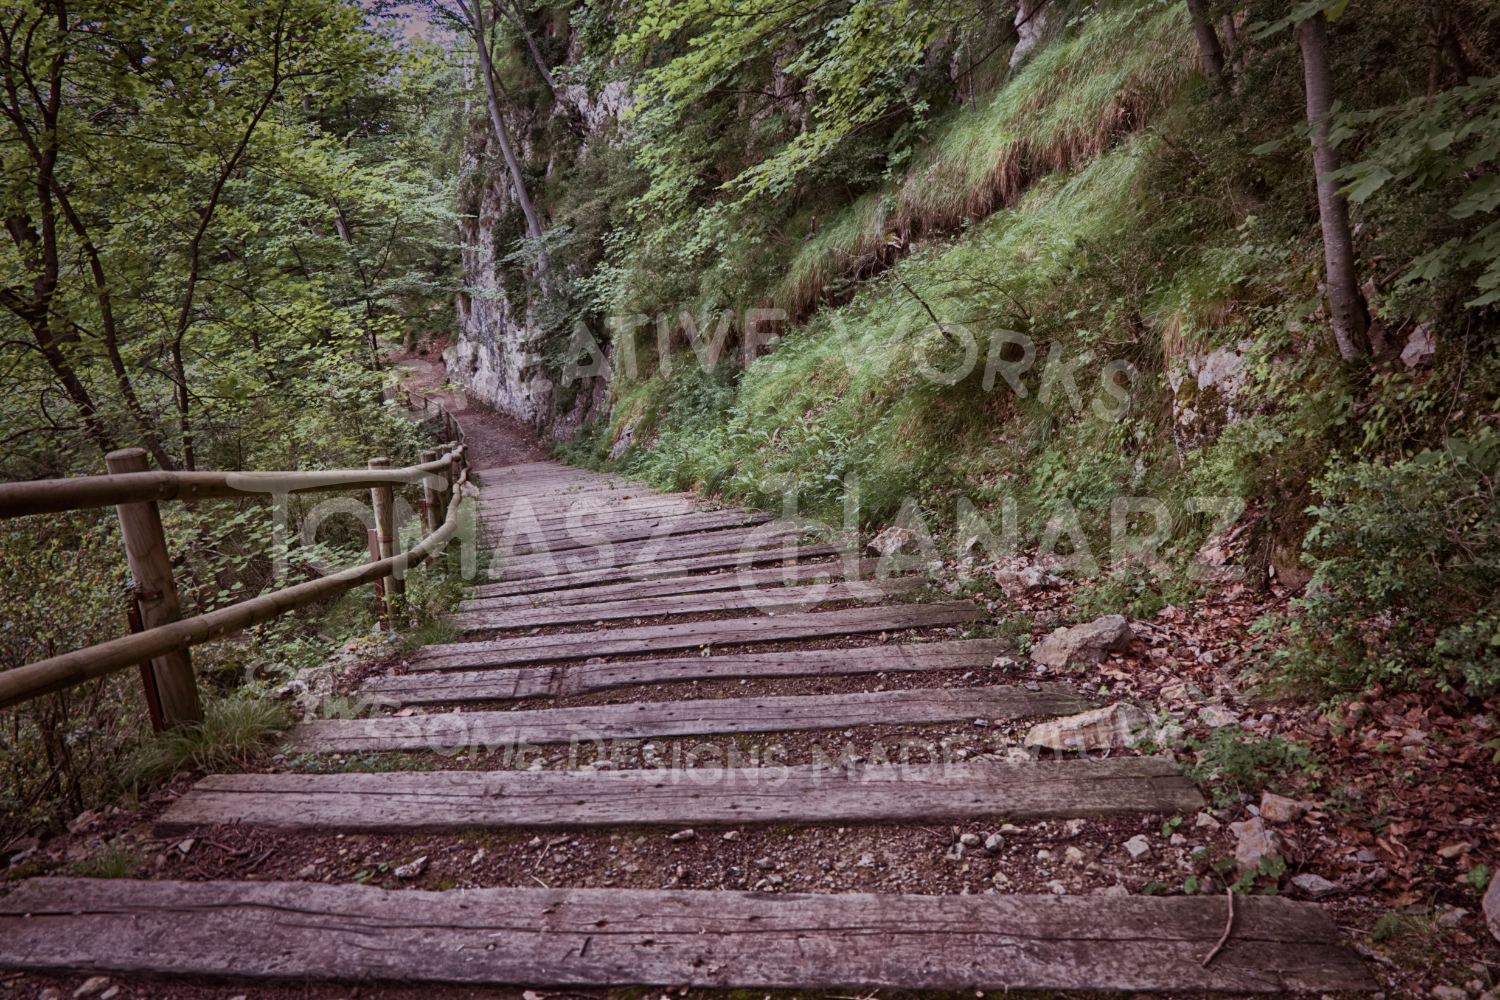 Stairs In The Forest example image 1